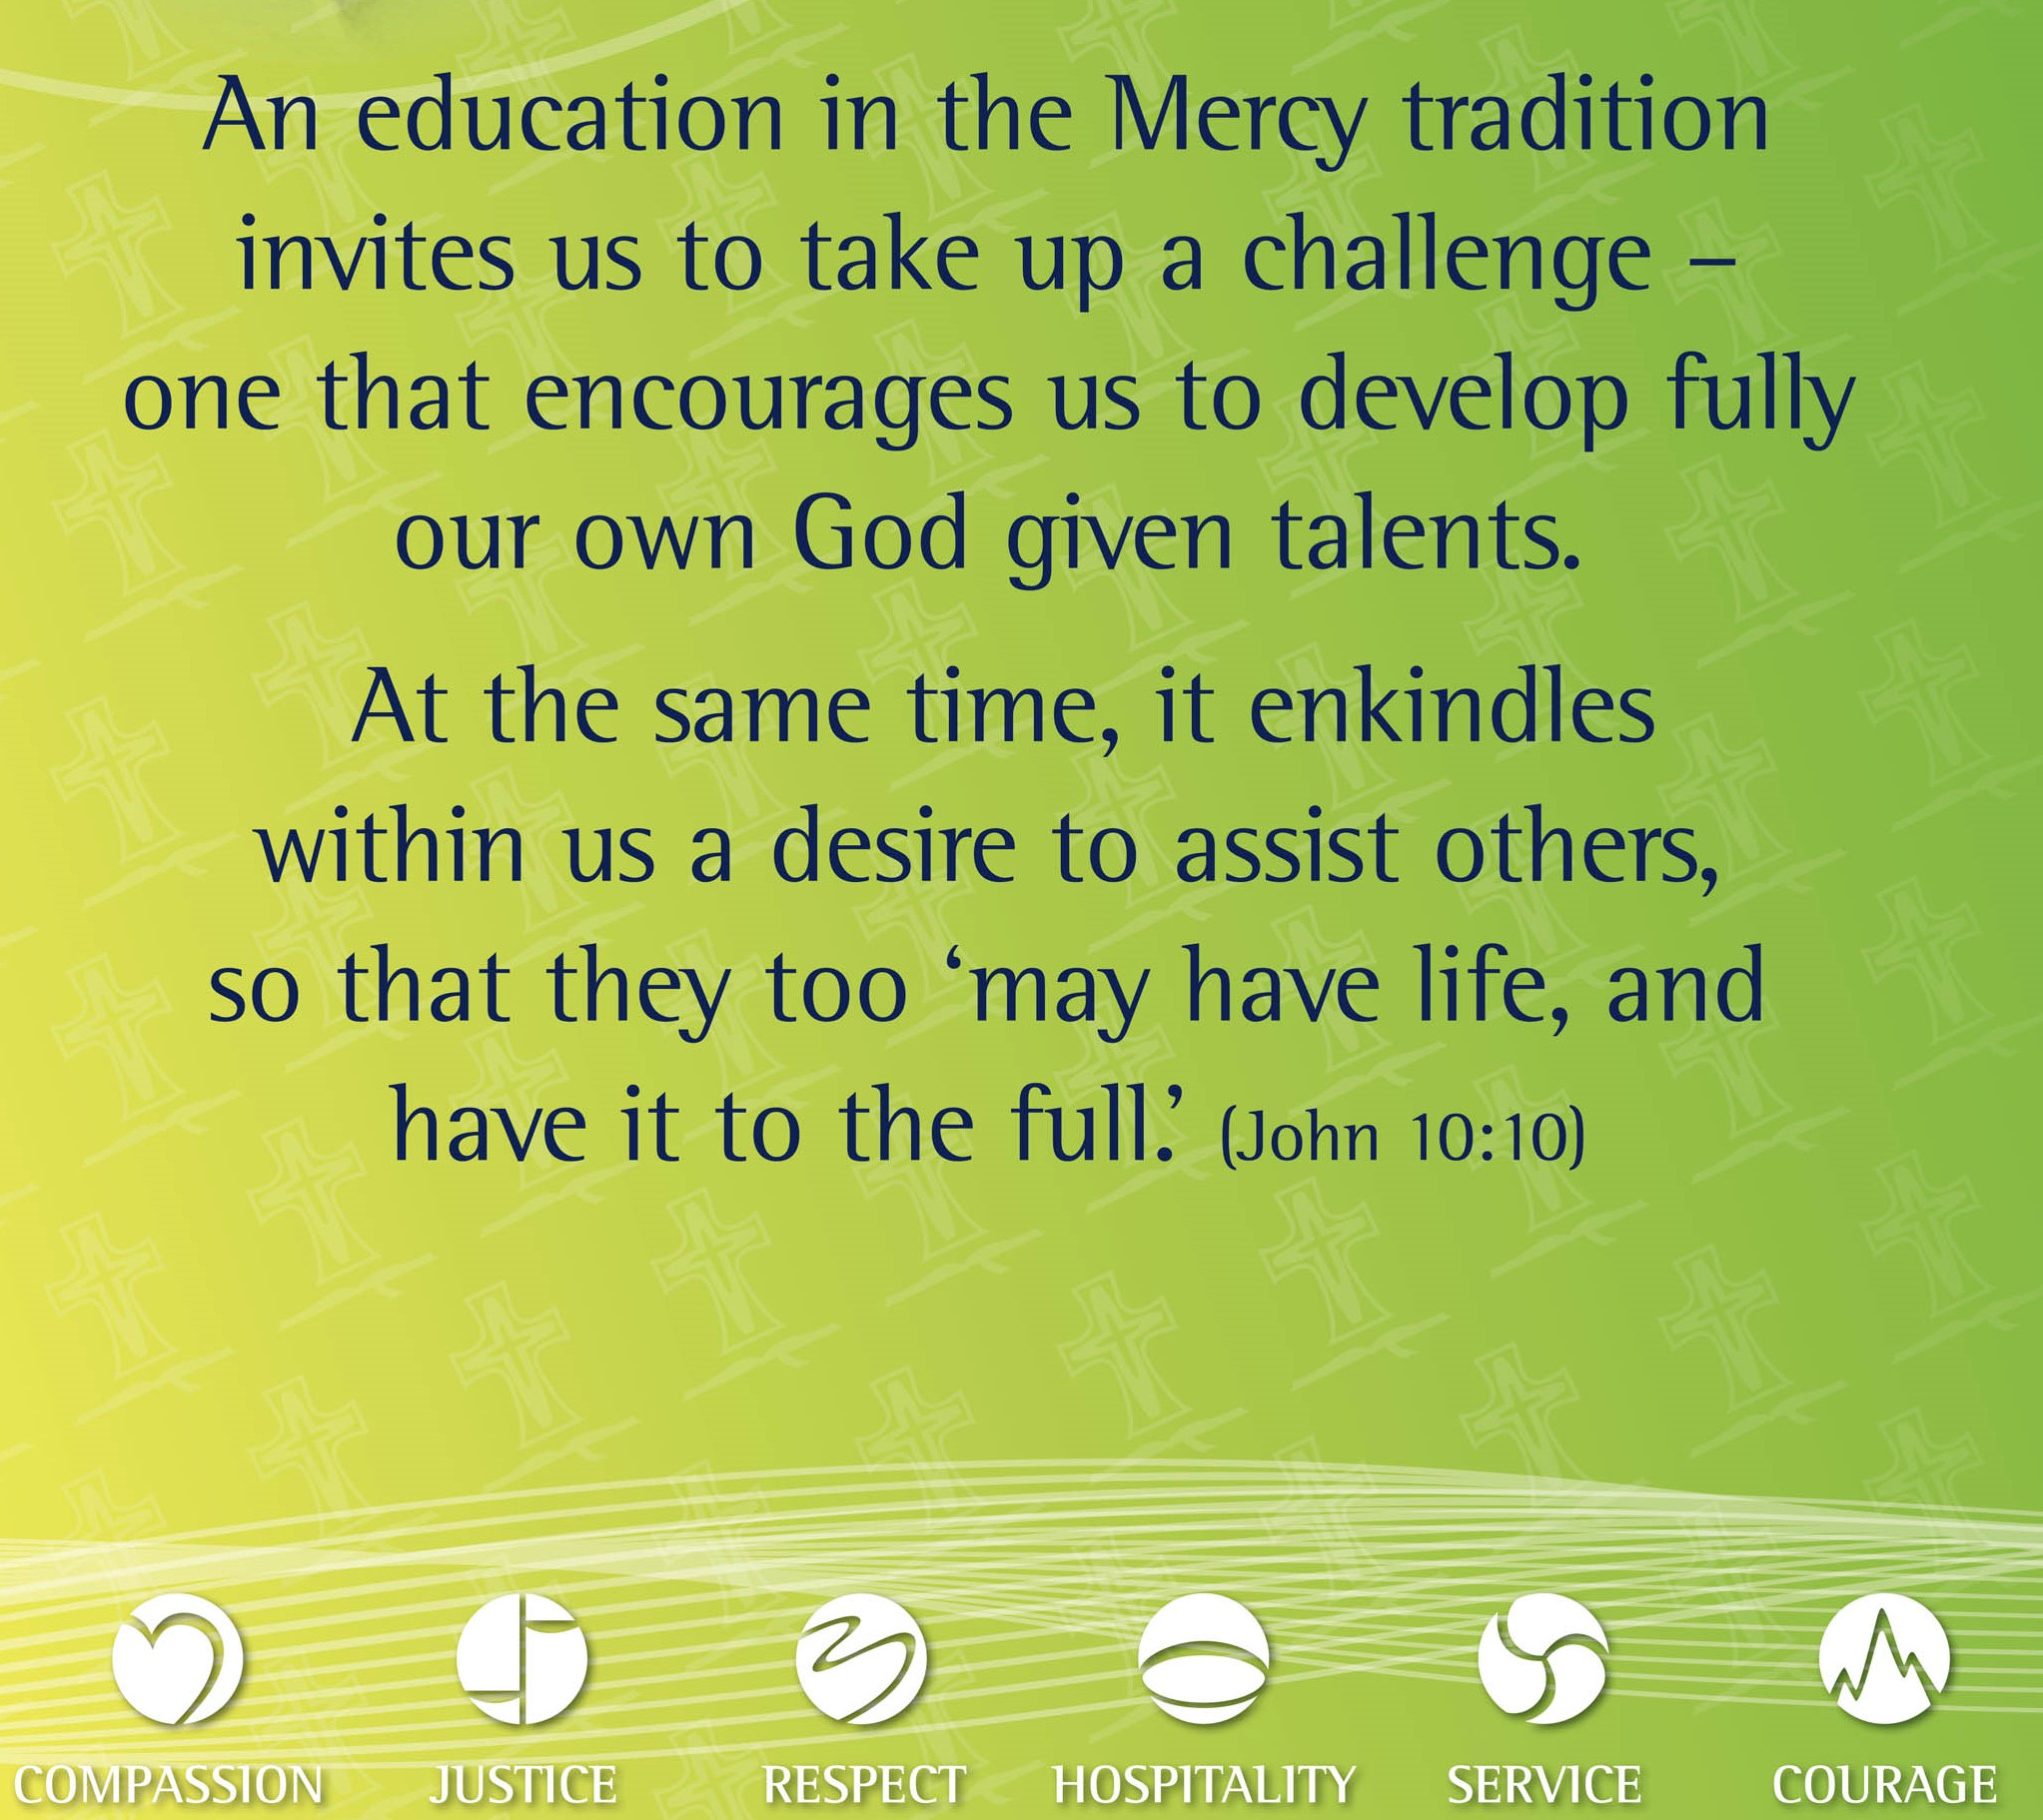 Who is Mercy Education?